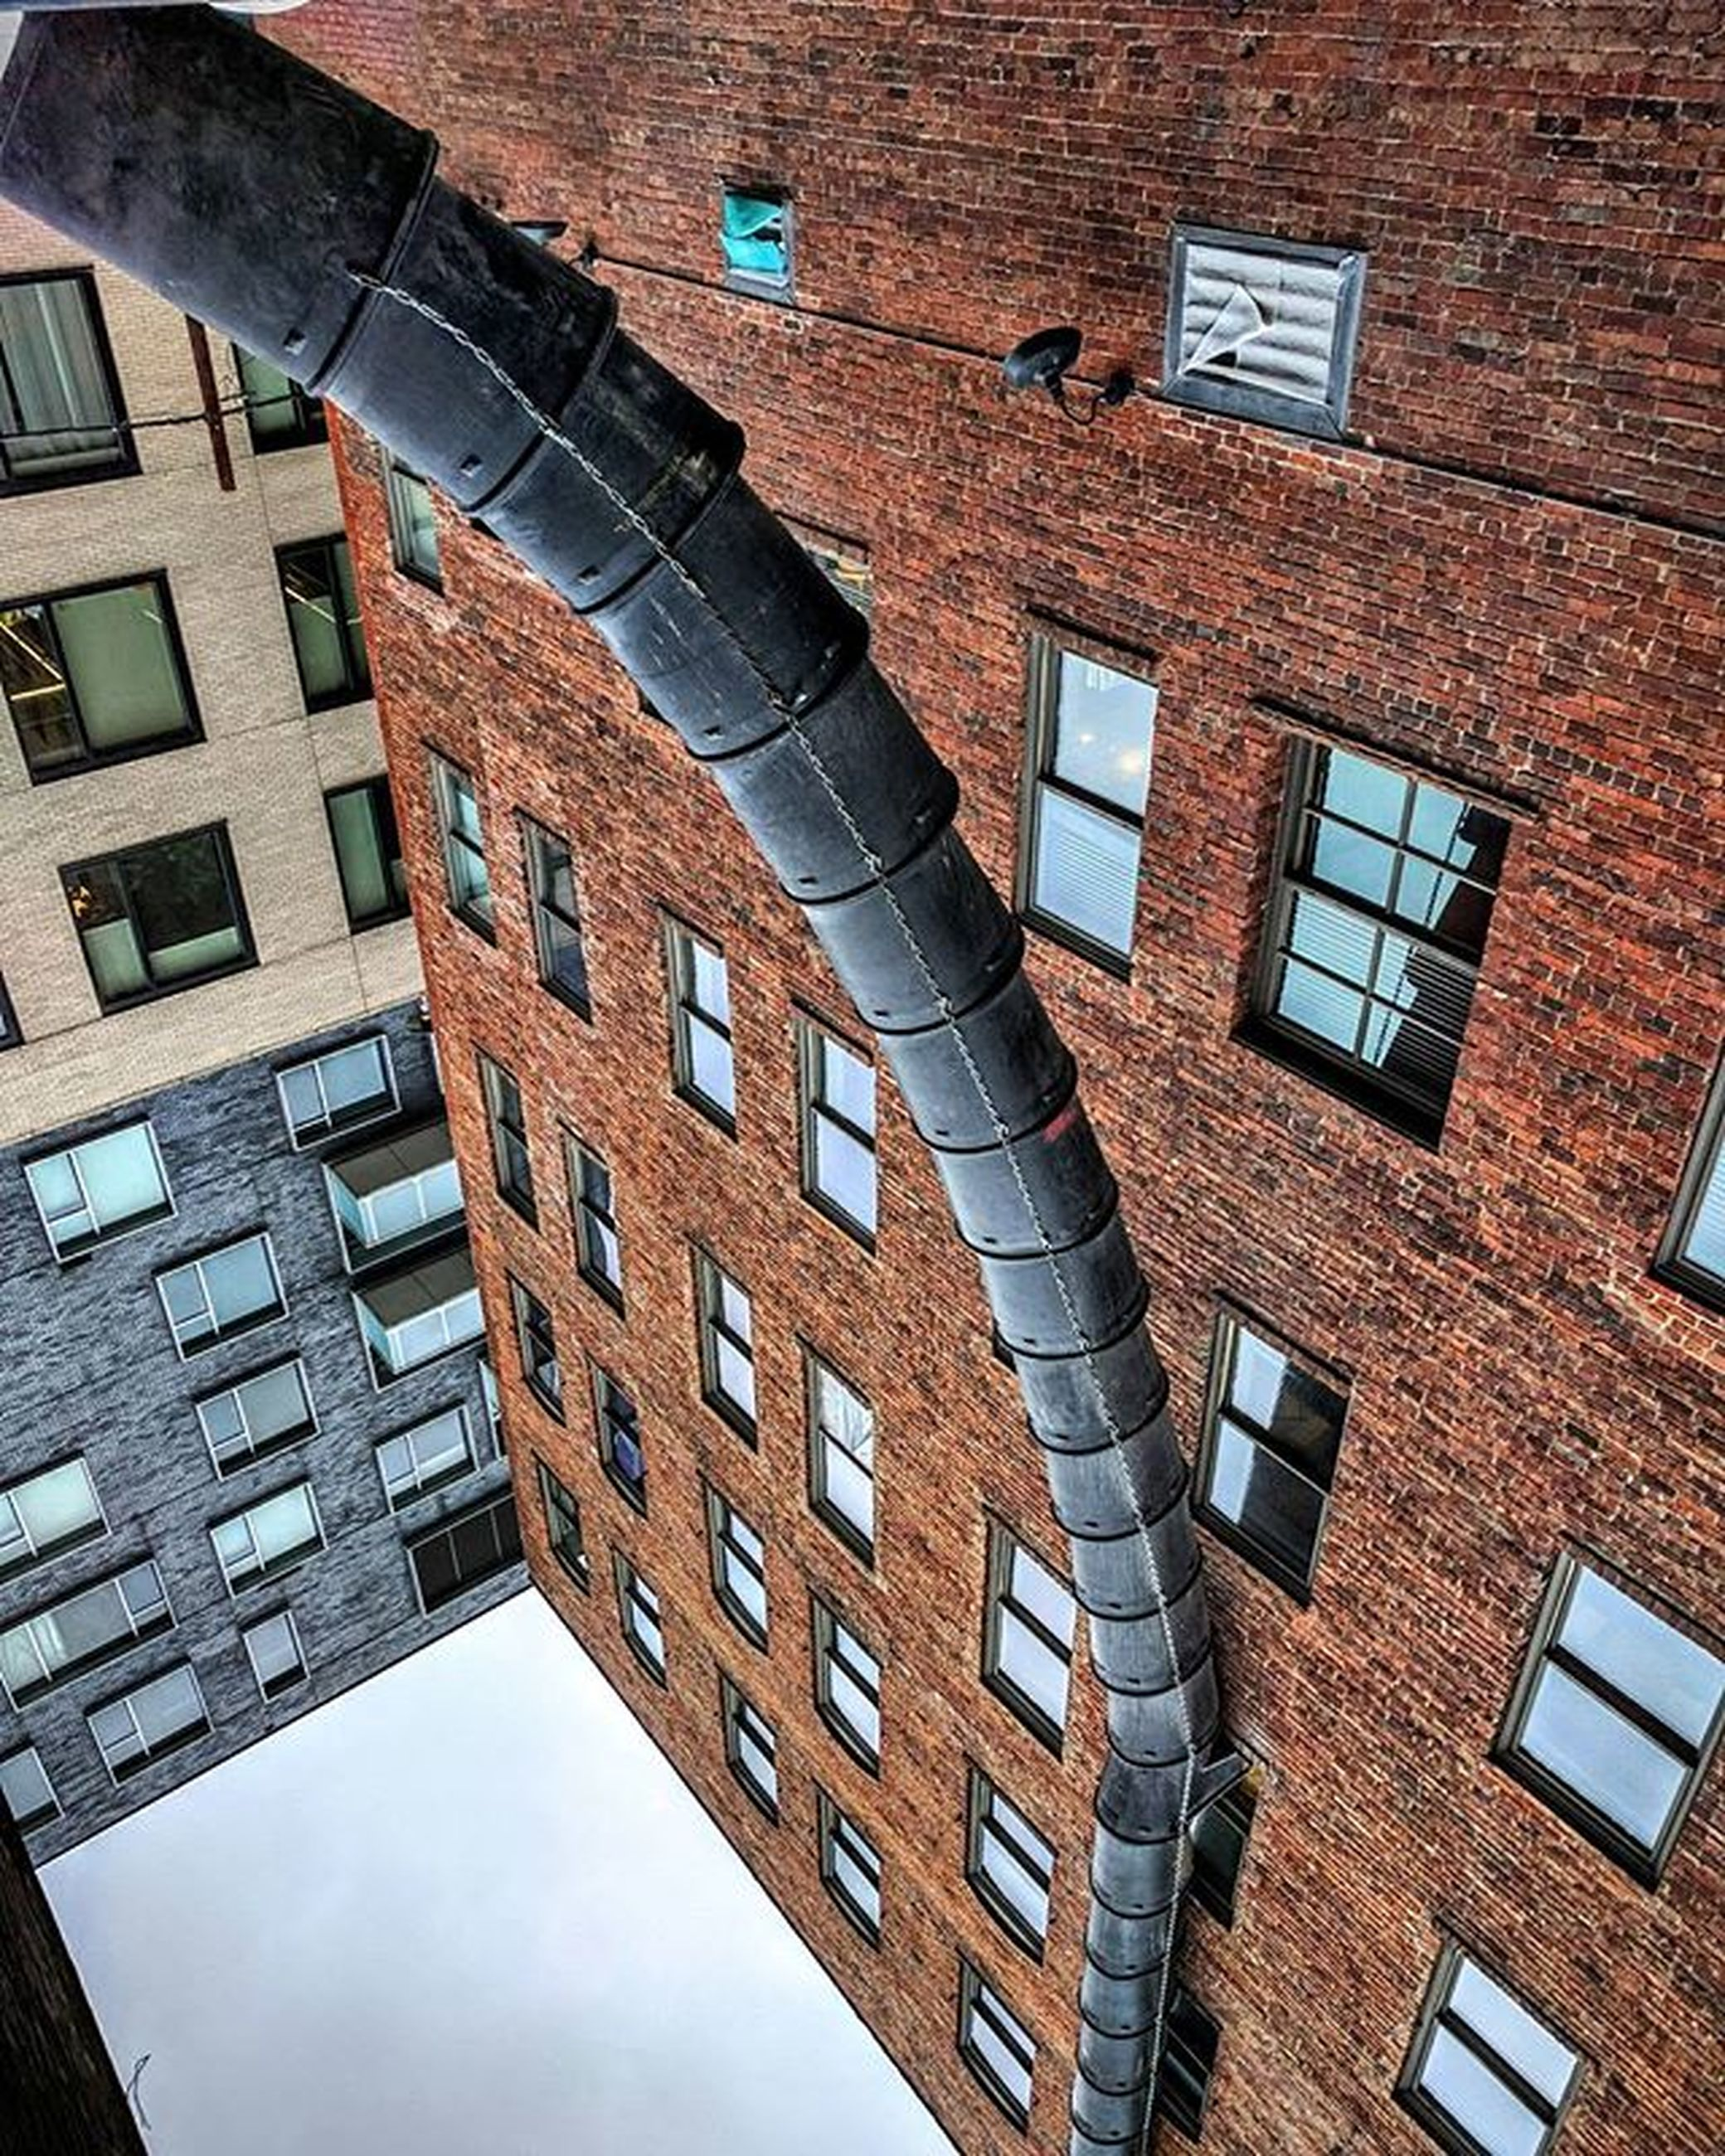 architecture, building exterior, built structure, low angle view, window, building, residential building, city, residential structure, reflection, full frame, day, outdoors, no people, backgrounds, glass - material, repetition, balcony, in a row, brick wall